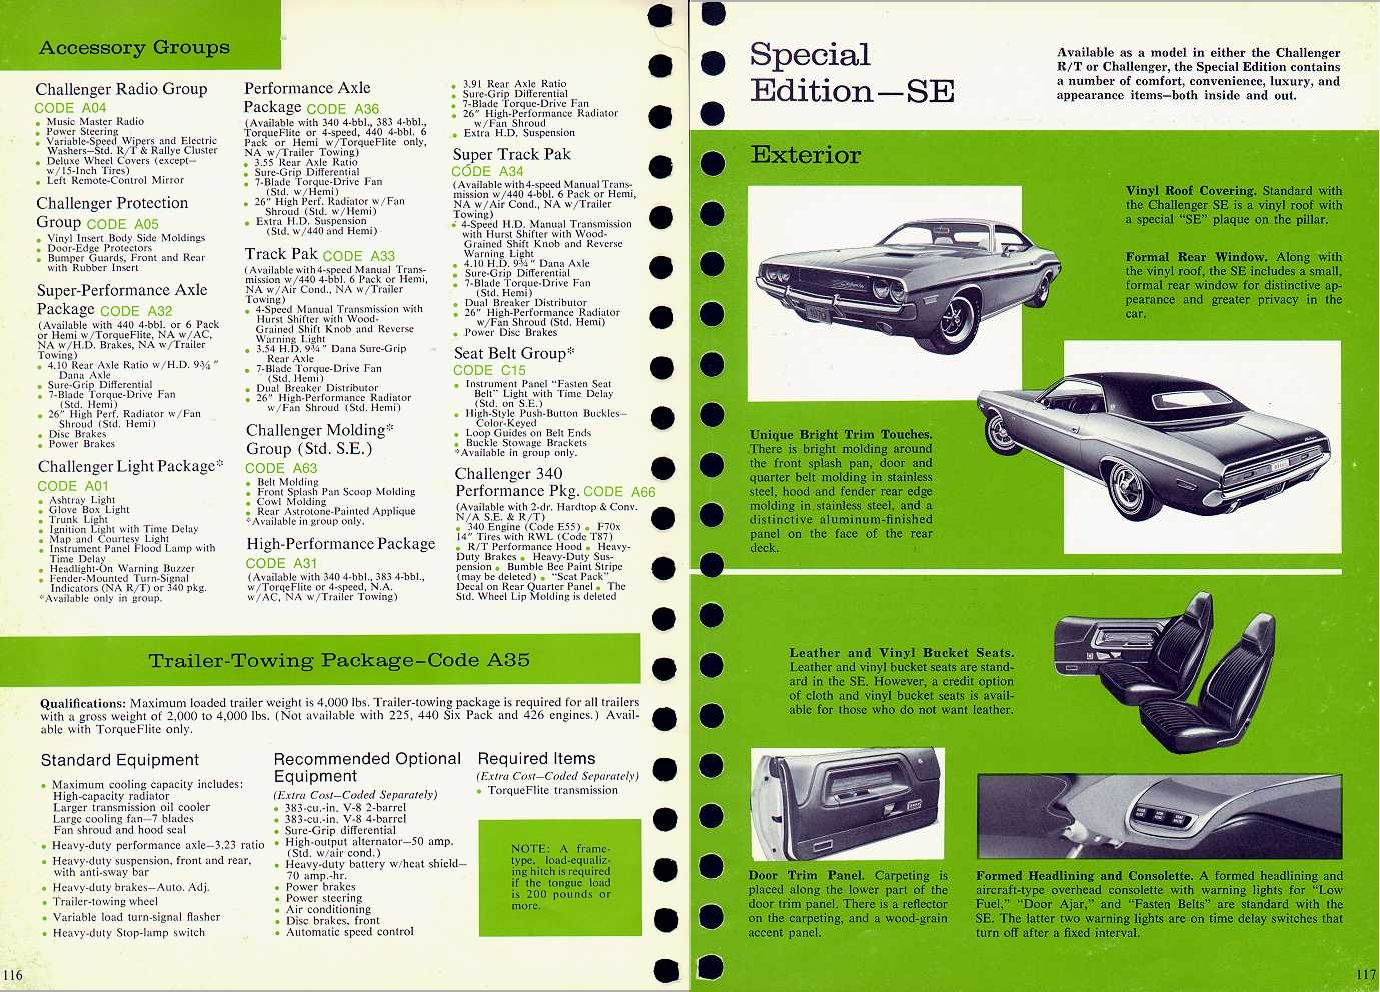 Kellys cars dodge challenger 1970 a scan of the packages from the 1970 challenger brocure nvjuhfo Images